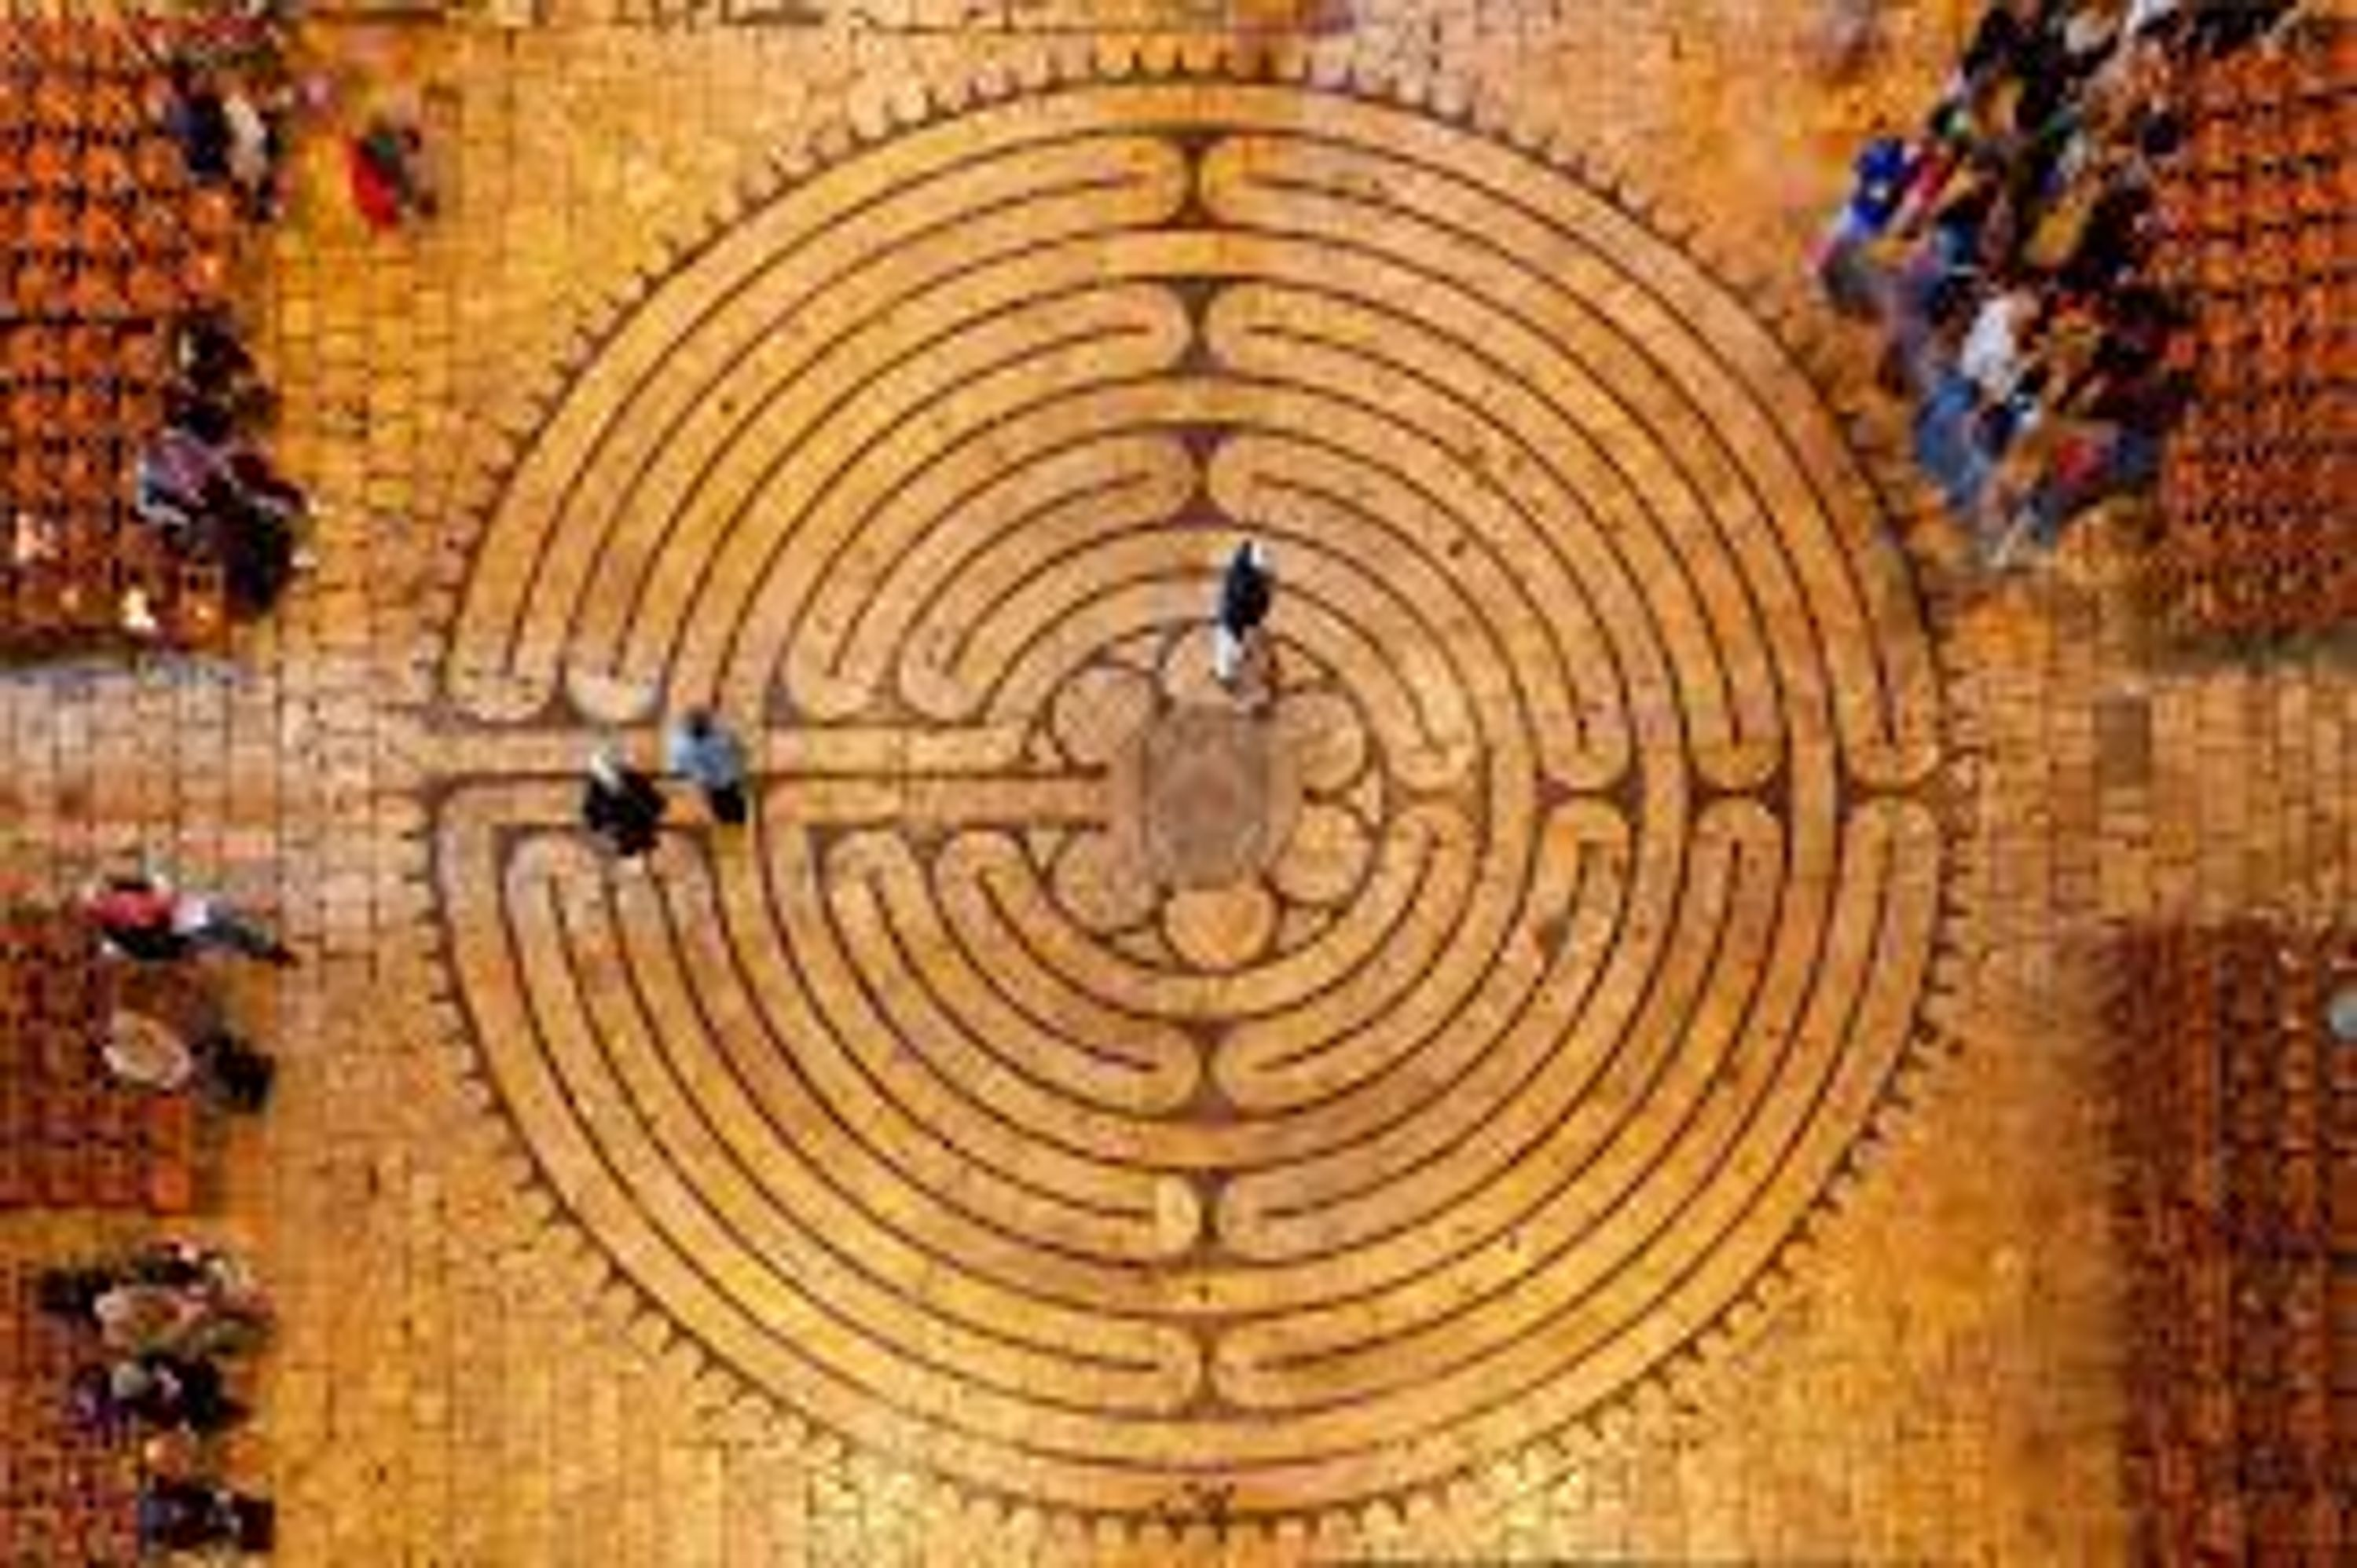 Overhead photograph of the labyrinth in the Cathedral at Chartres.